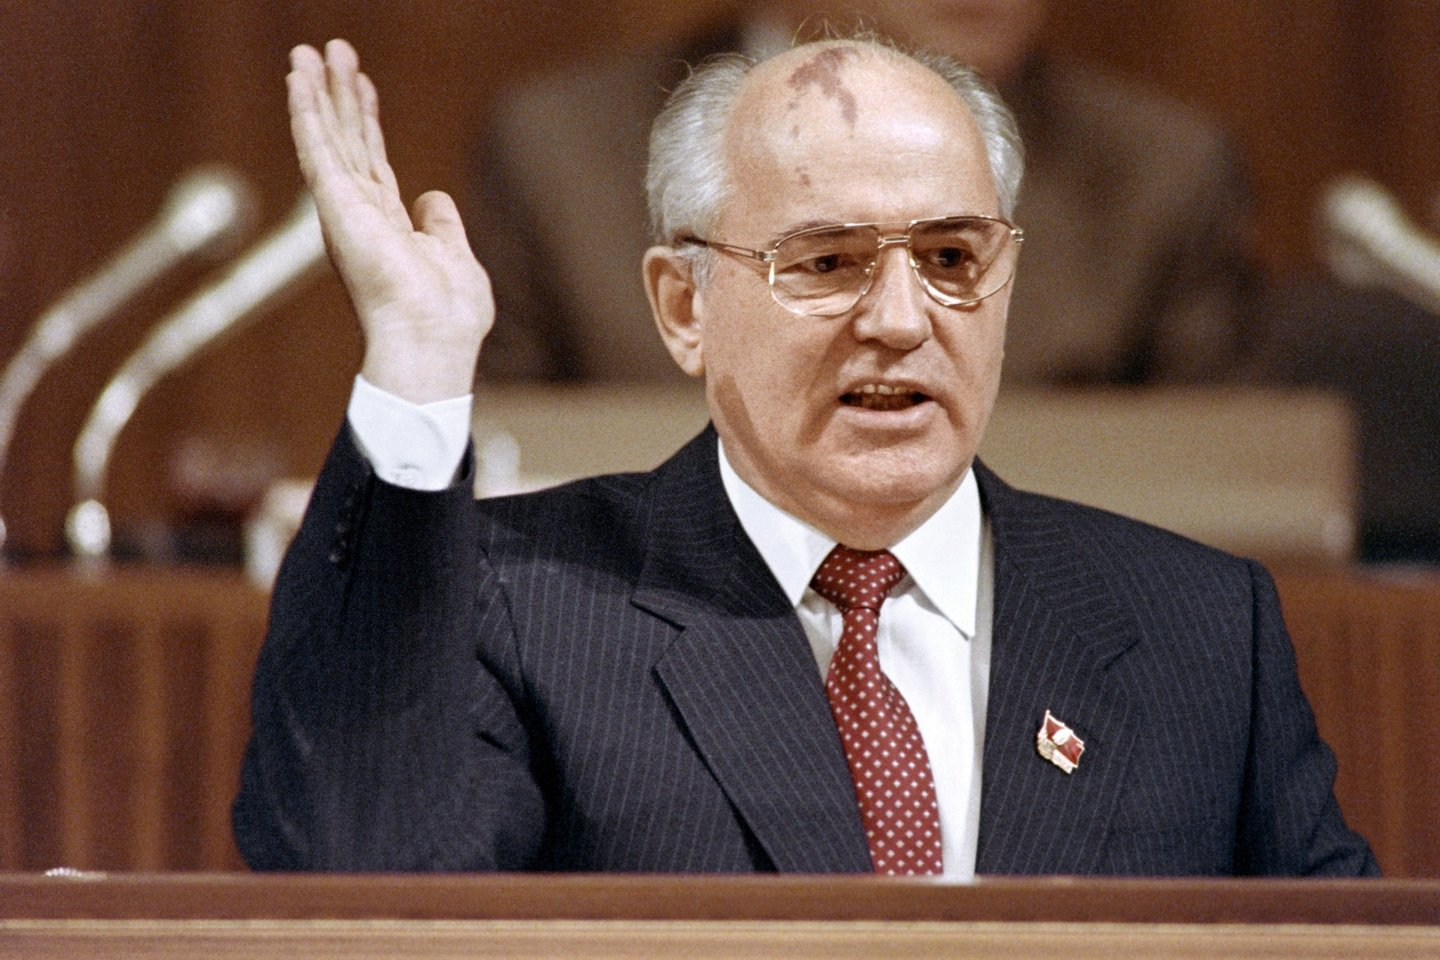 Soviet President Mikhail Gorbachev gestures as he addresses to the 28th Congress Soviet Communist Party (CPSU) in Moscow on July 10, 1990. AFP PHOTO VITALY ARMAND (Photo credit should read VITALY ARMAND/AFP/Getty Images)